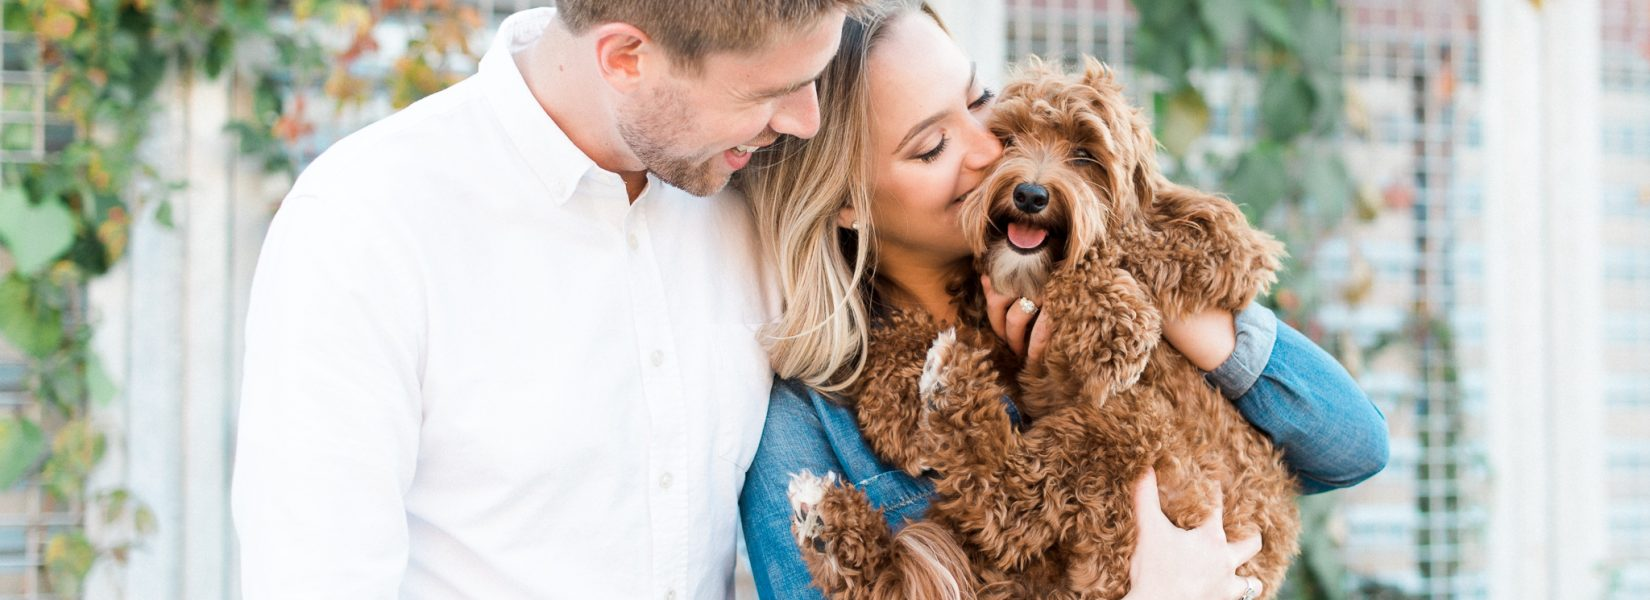 Where to take photos with your dog in Chicago + Chicago Suburbs